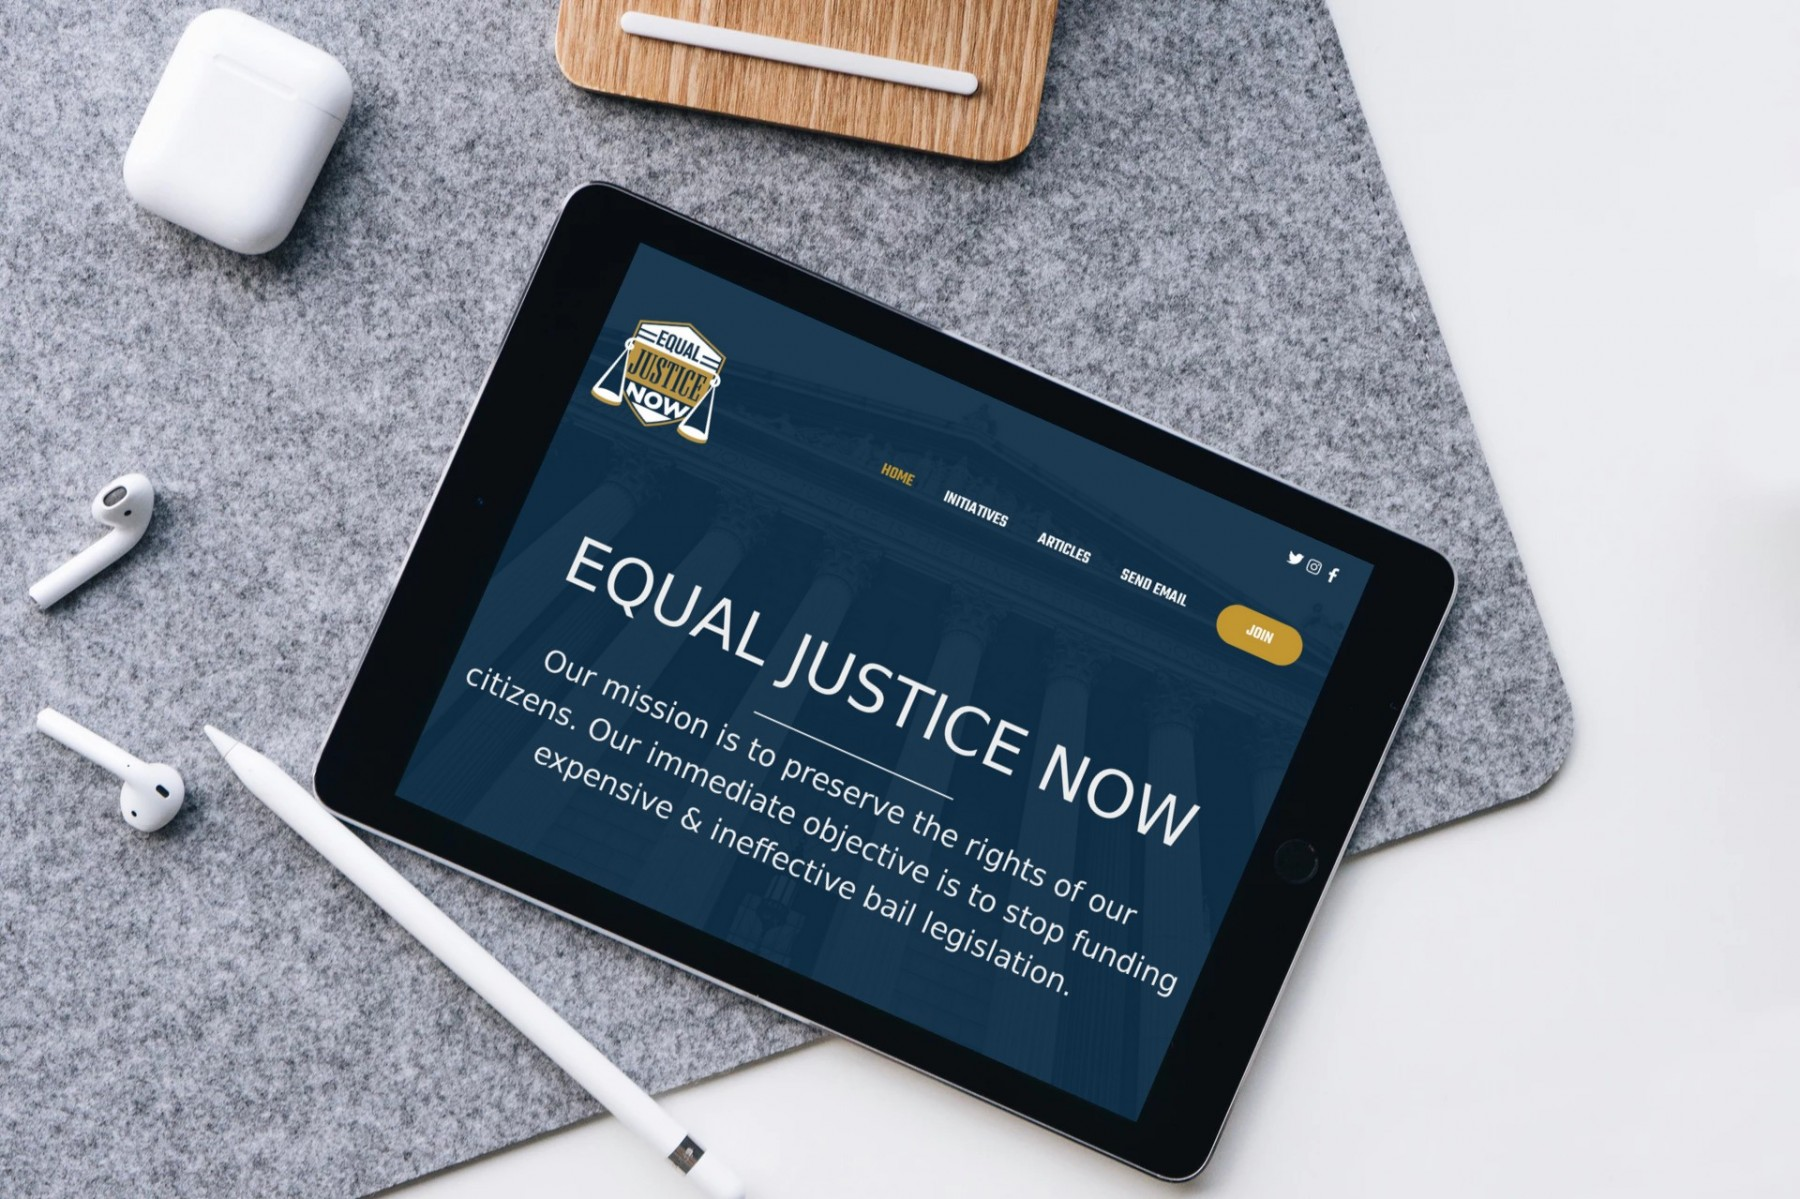 Equal Justice Now Website Design iPad